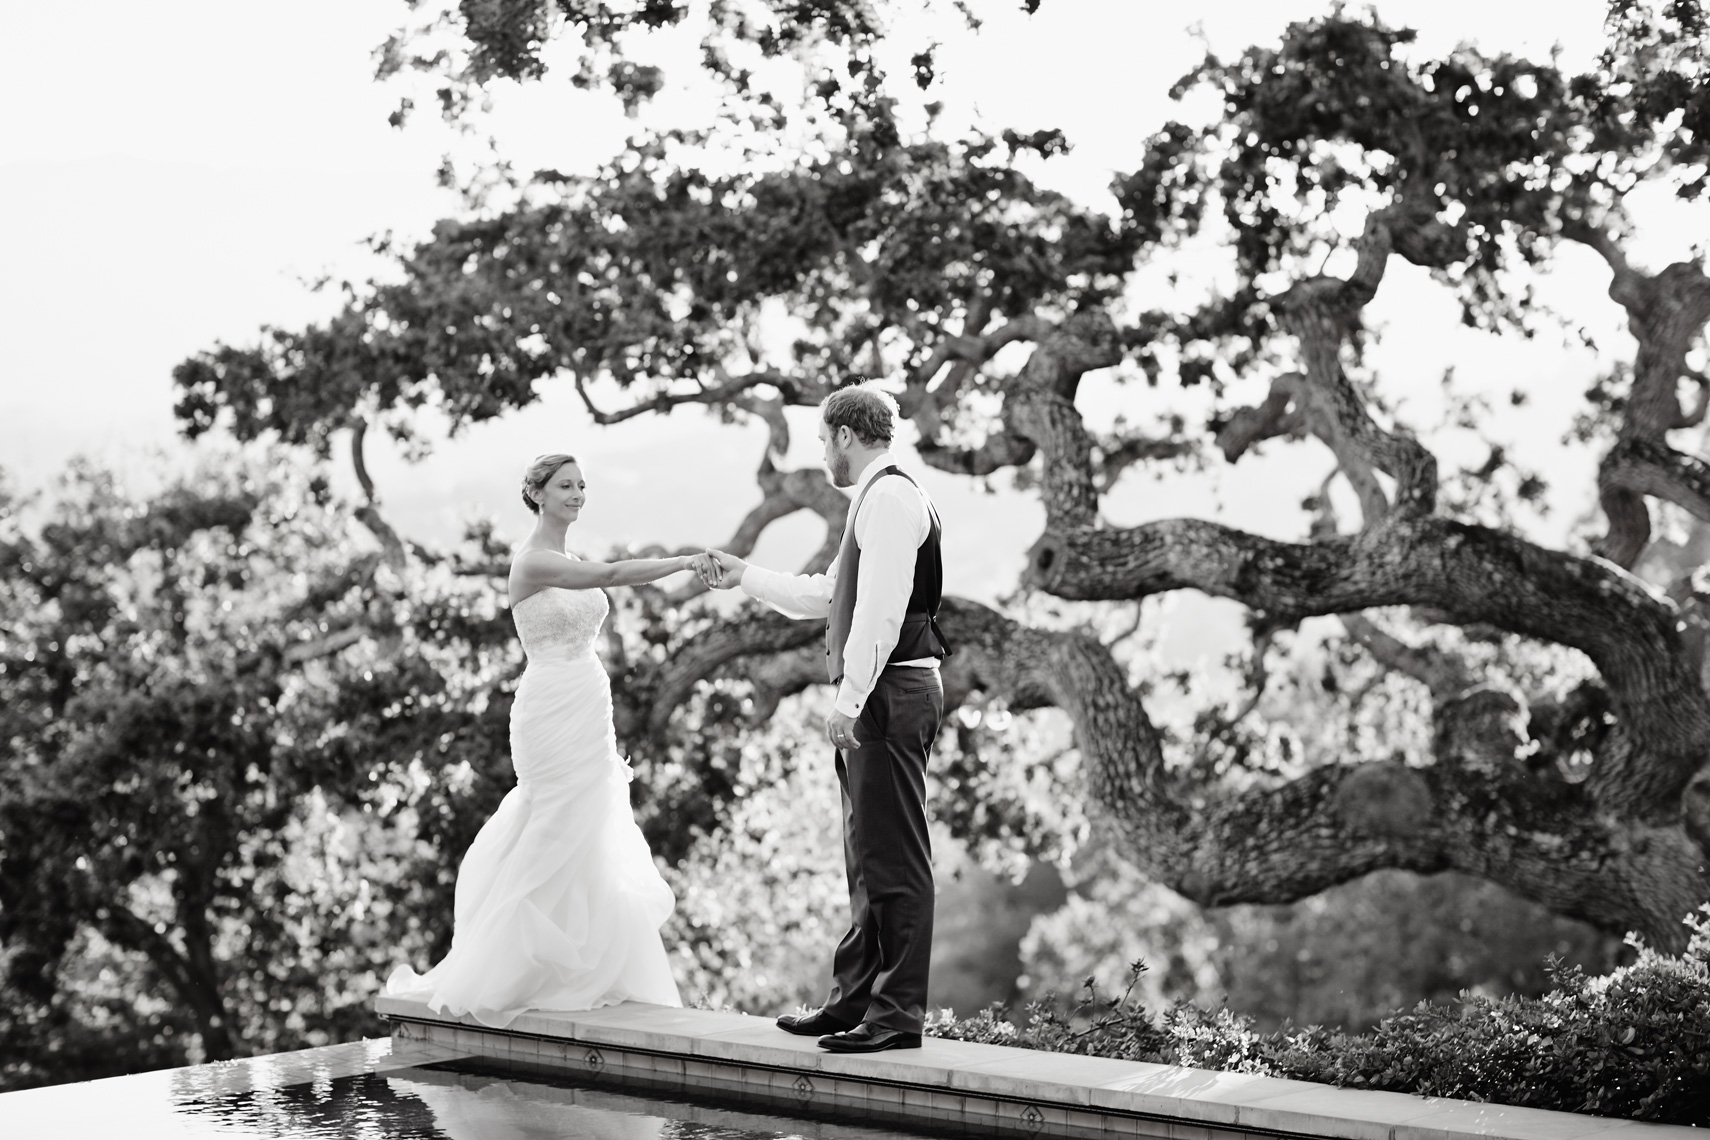 Bride and Groom pose at Palo Alto Wedding. Destination wedding photographer based in Laguna Beach.